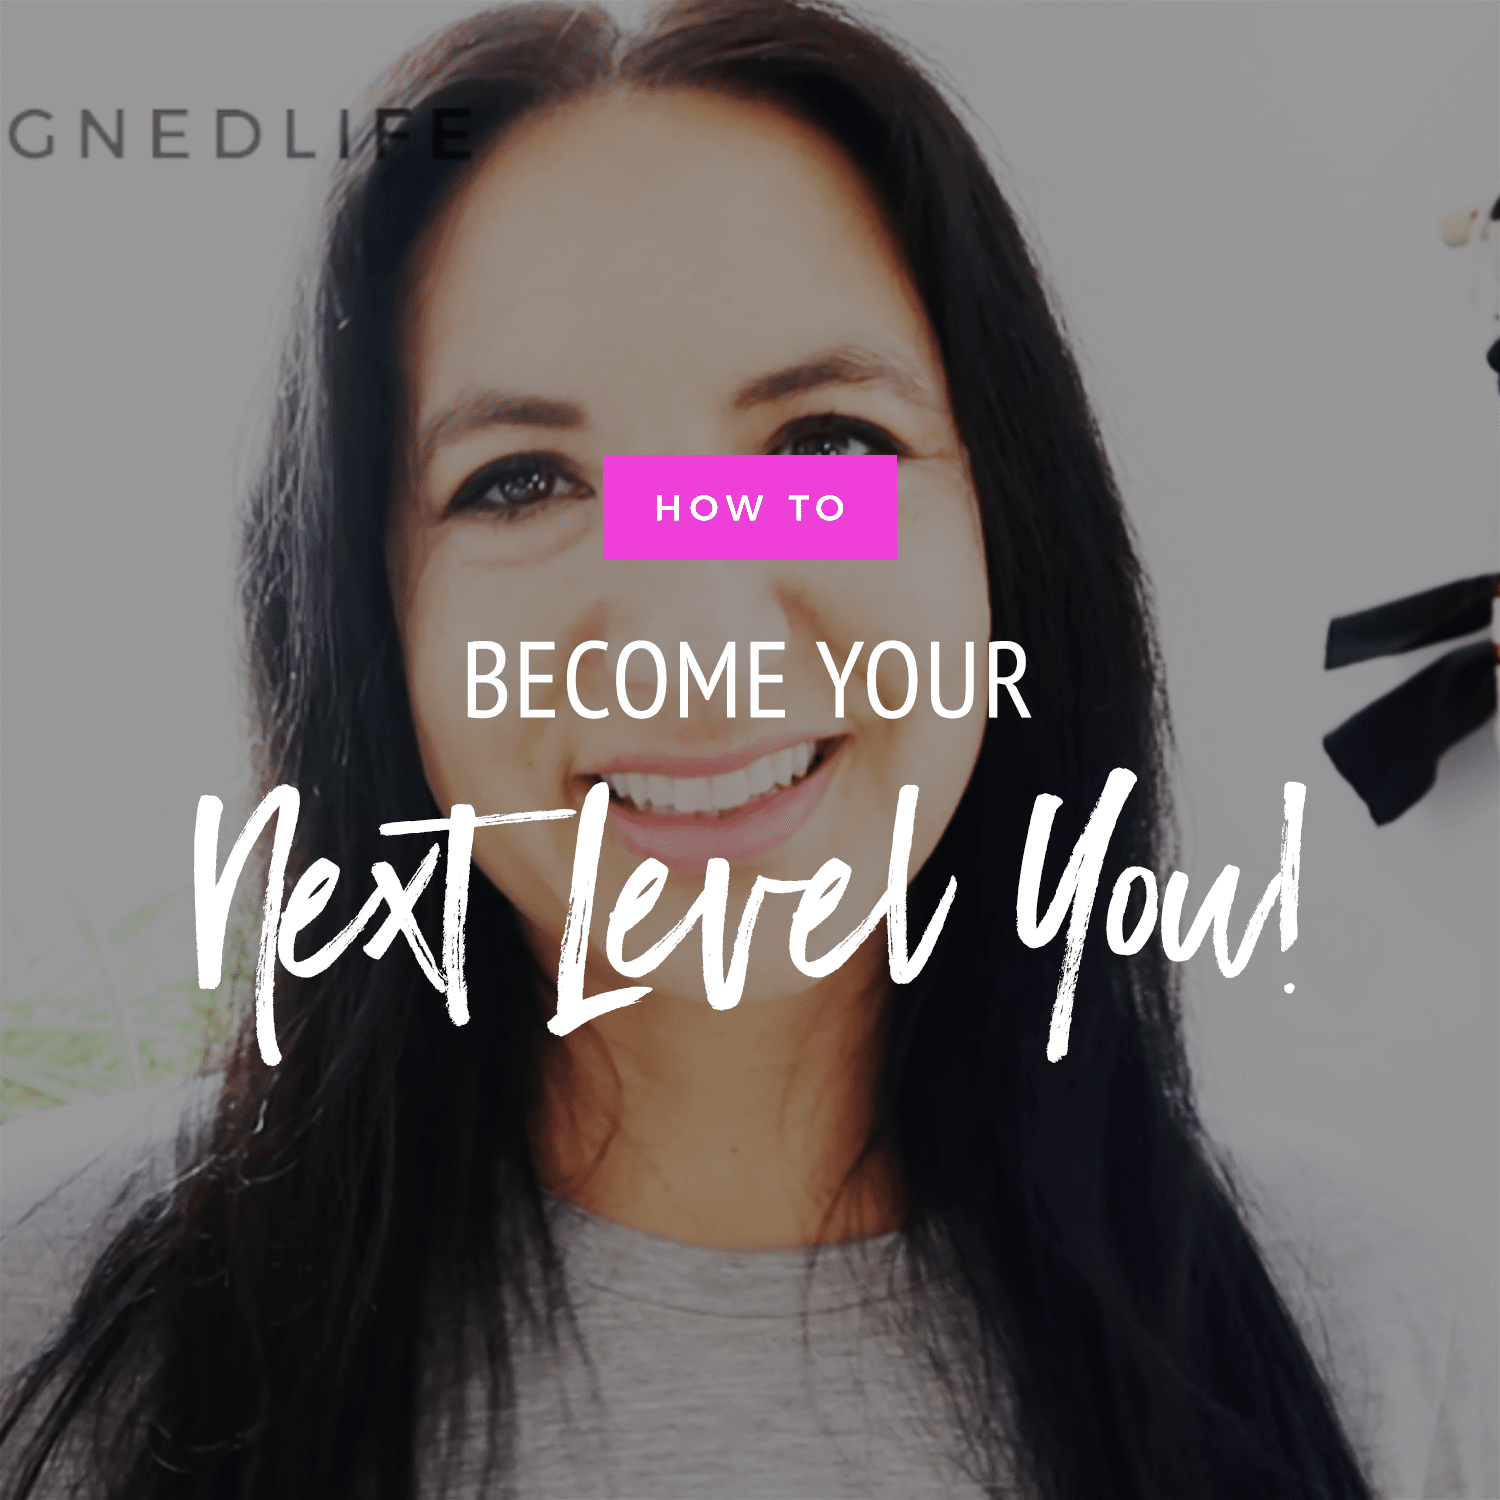 How To Become Your Next Level You